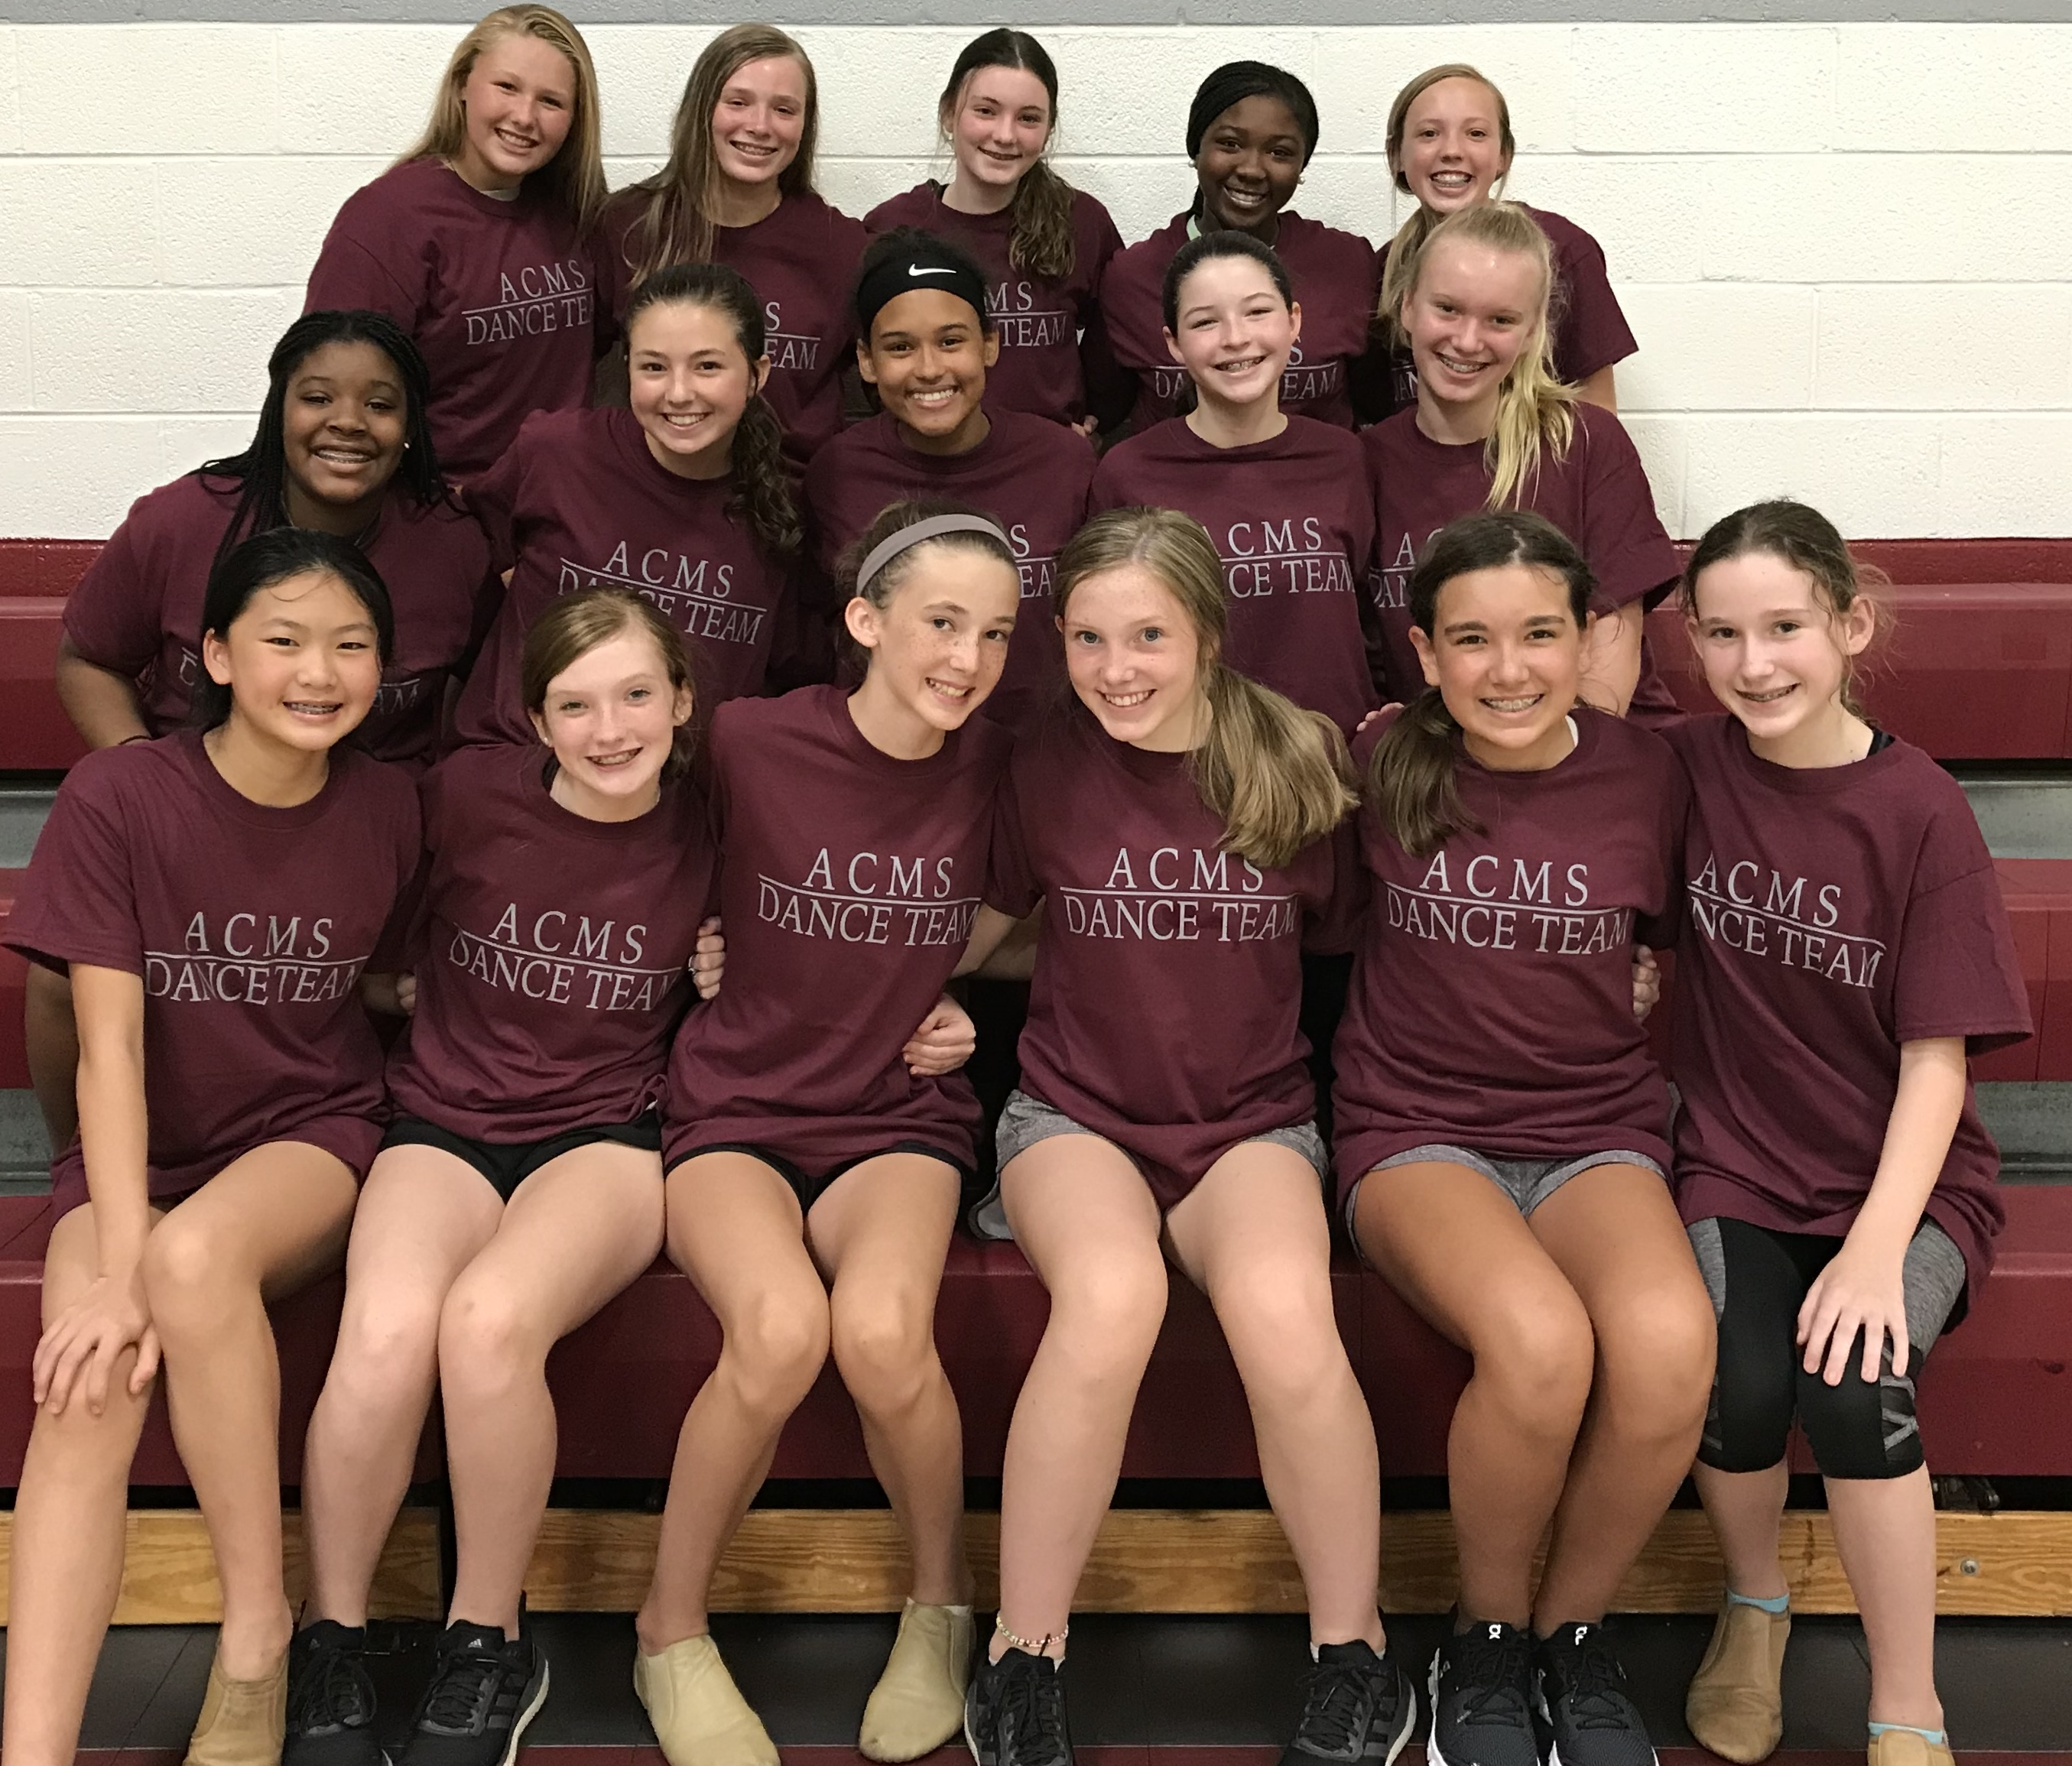 ACMS Dance Team Camp Fee